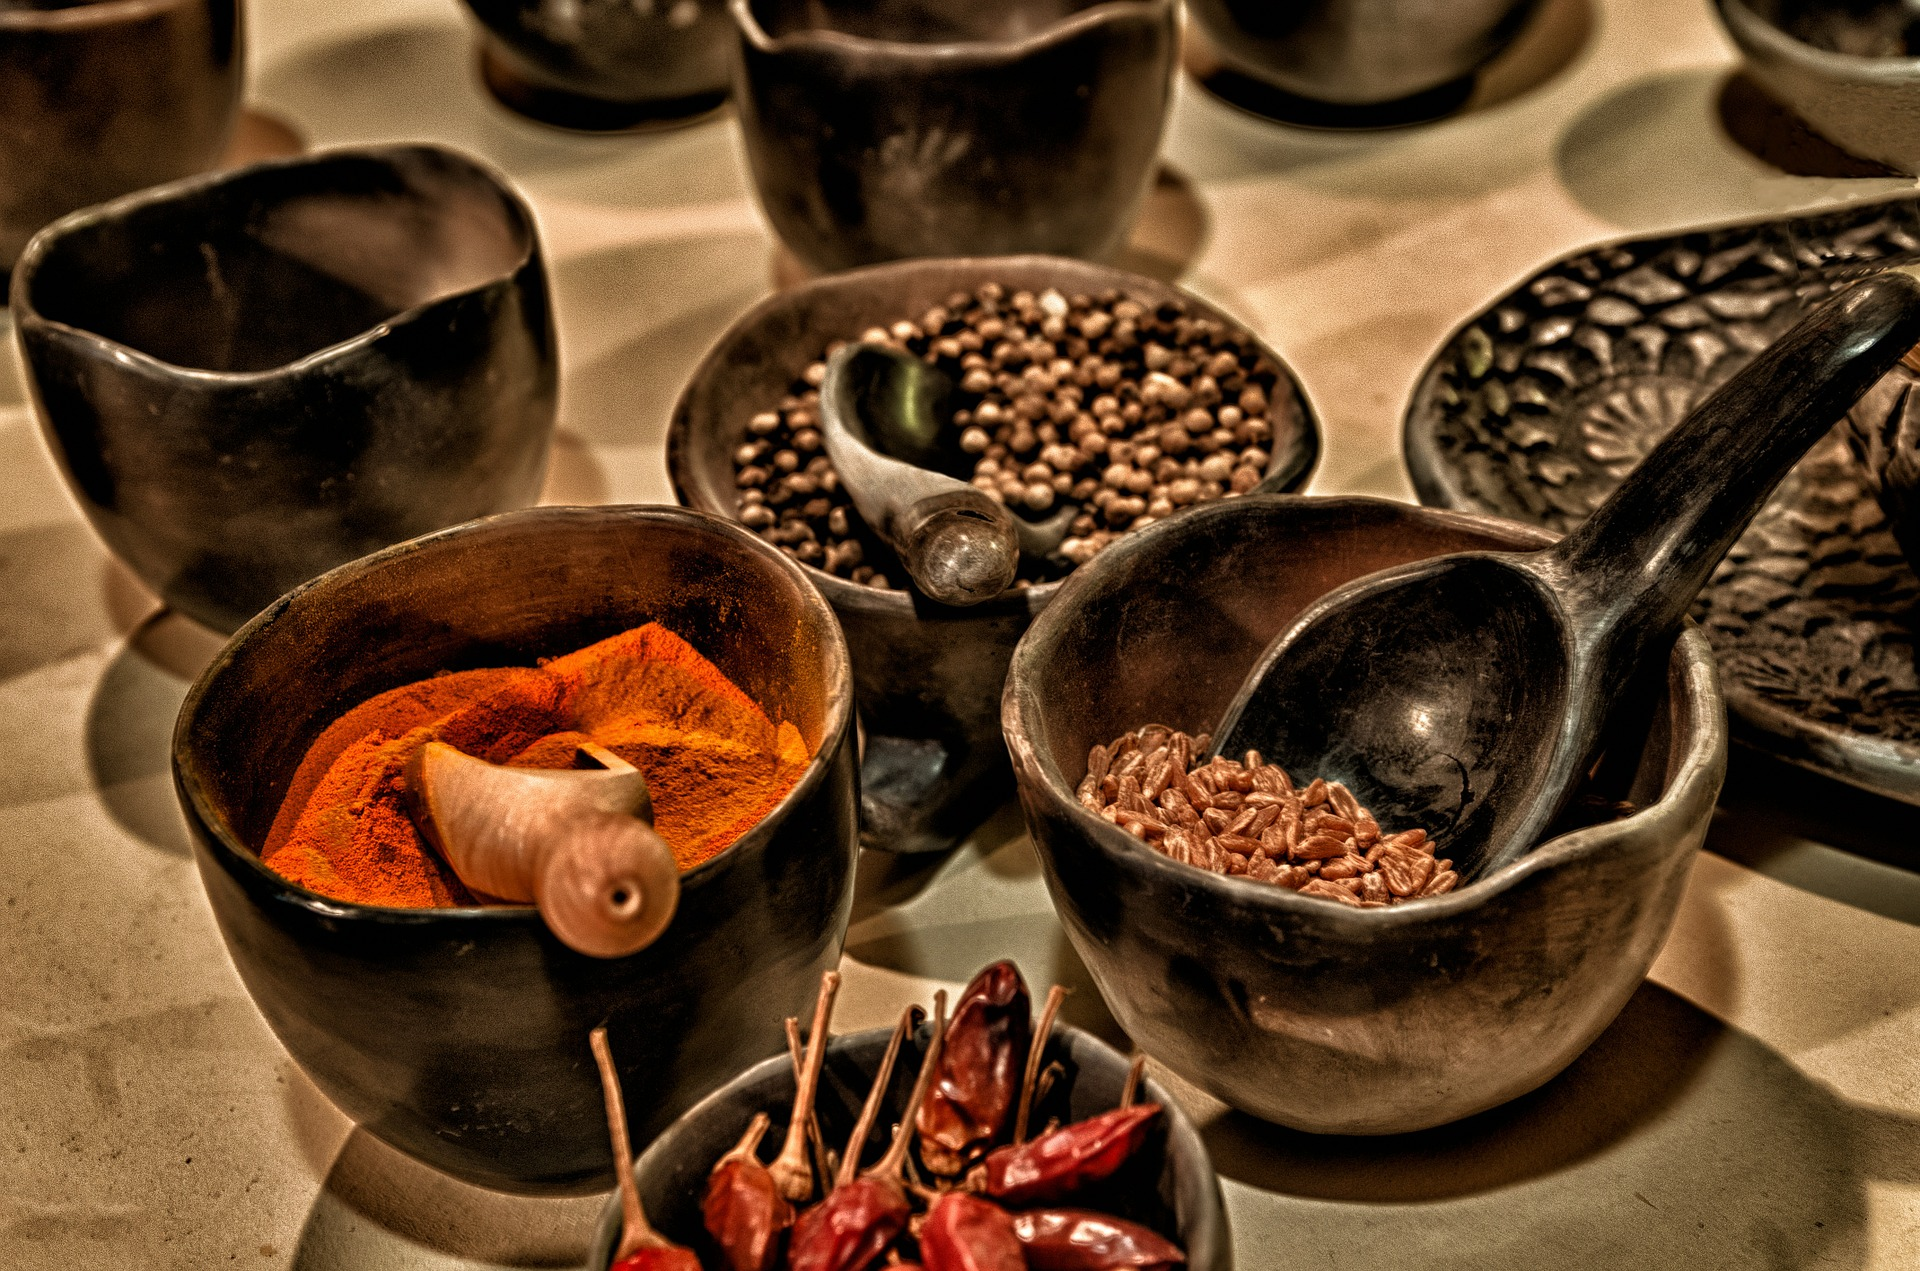 How to Make an Indian Meal From Scratch -